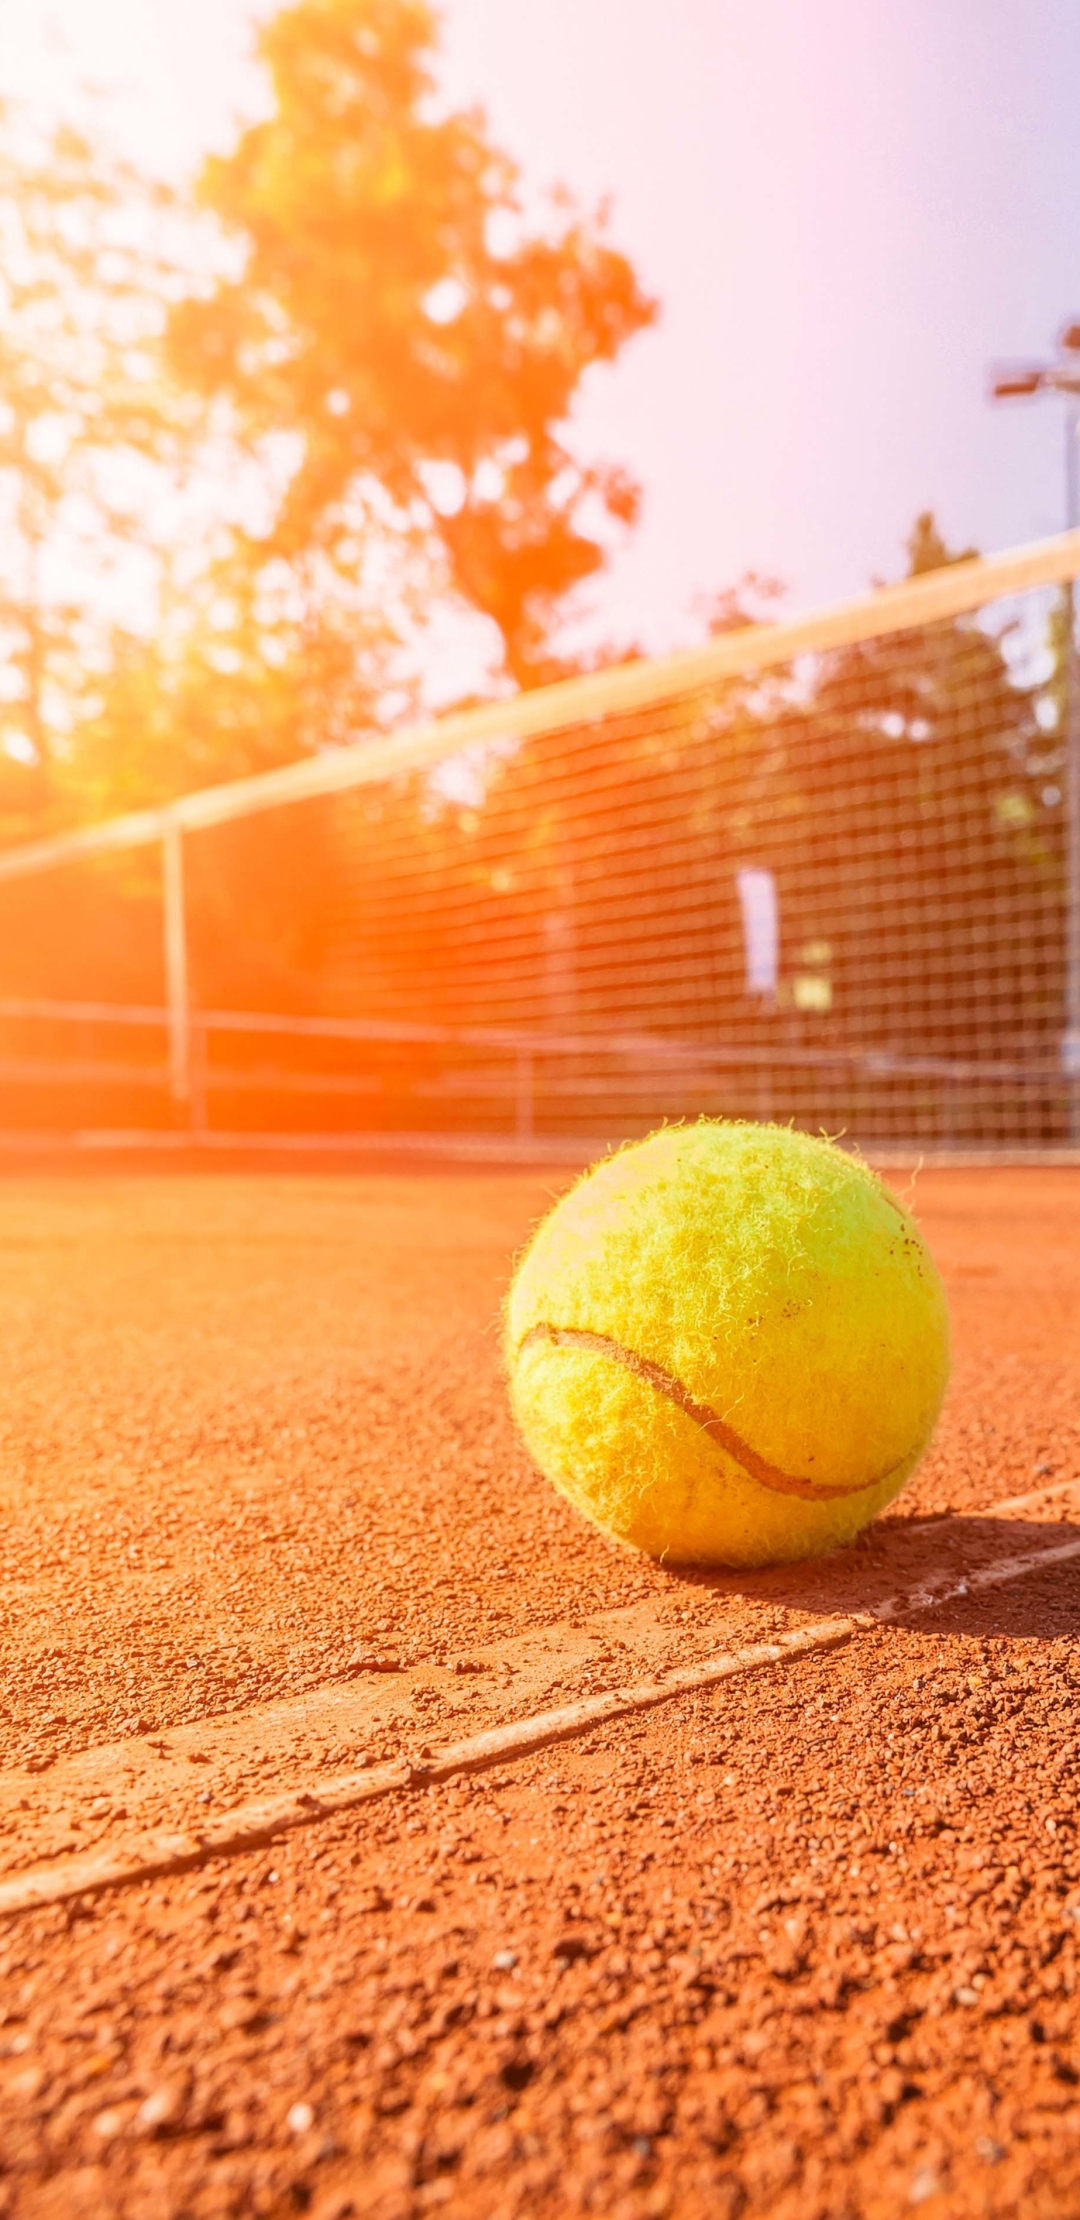 Sports Tennis 1080x2220 Wallpaper Id 783588 Mobile Abyss